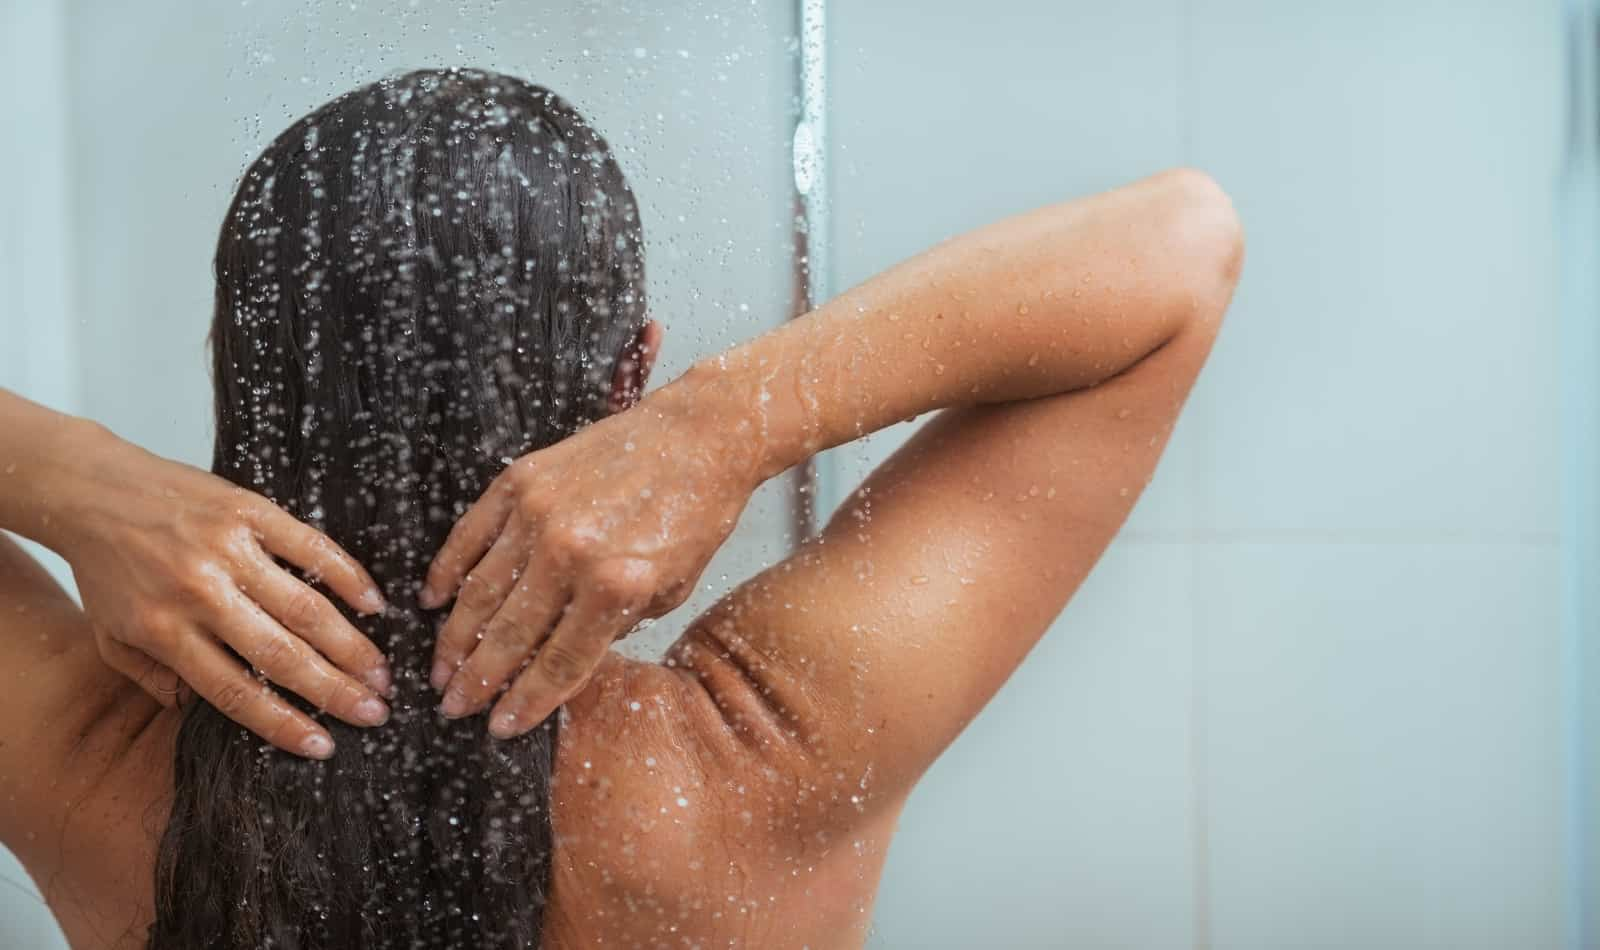 Woman washing long hair in shower after tanning